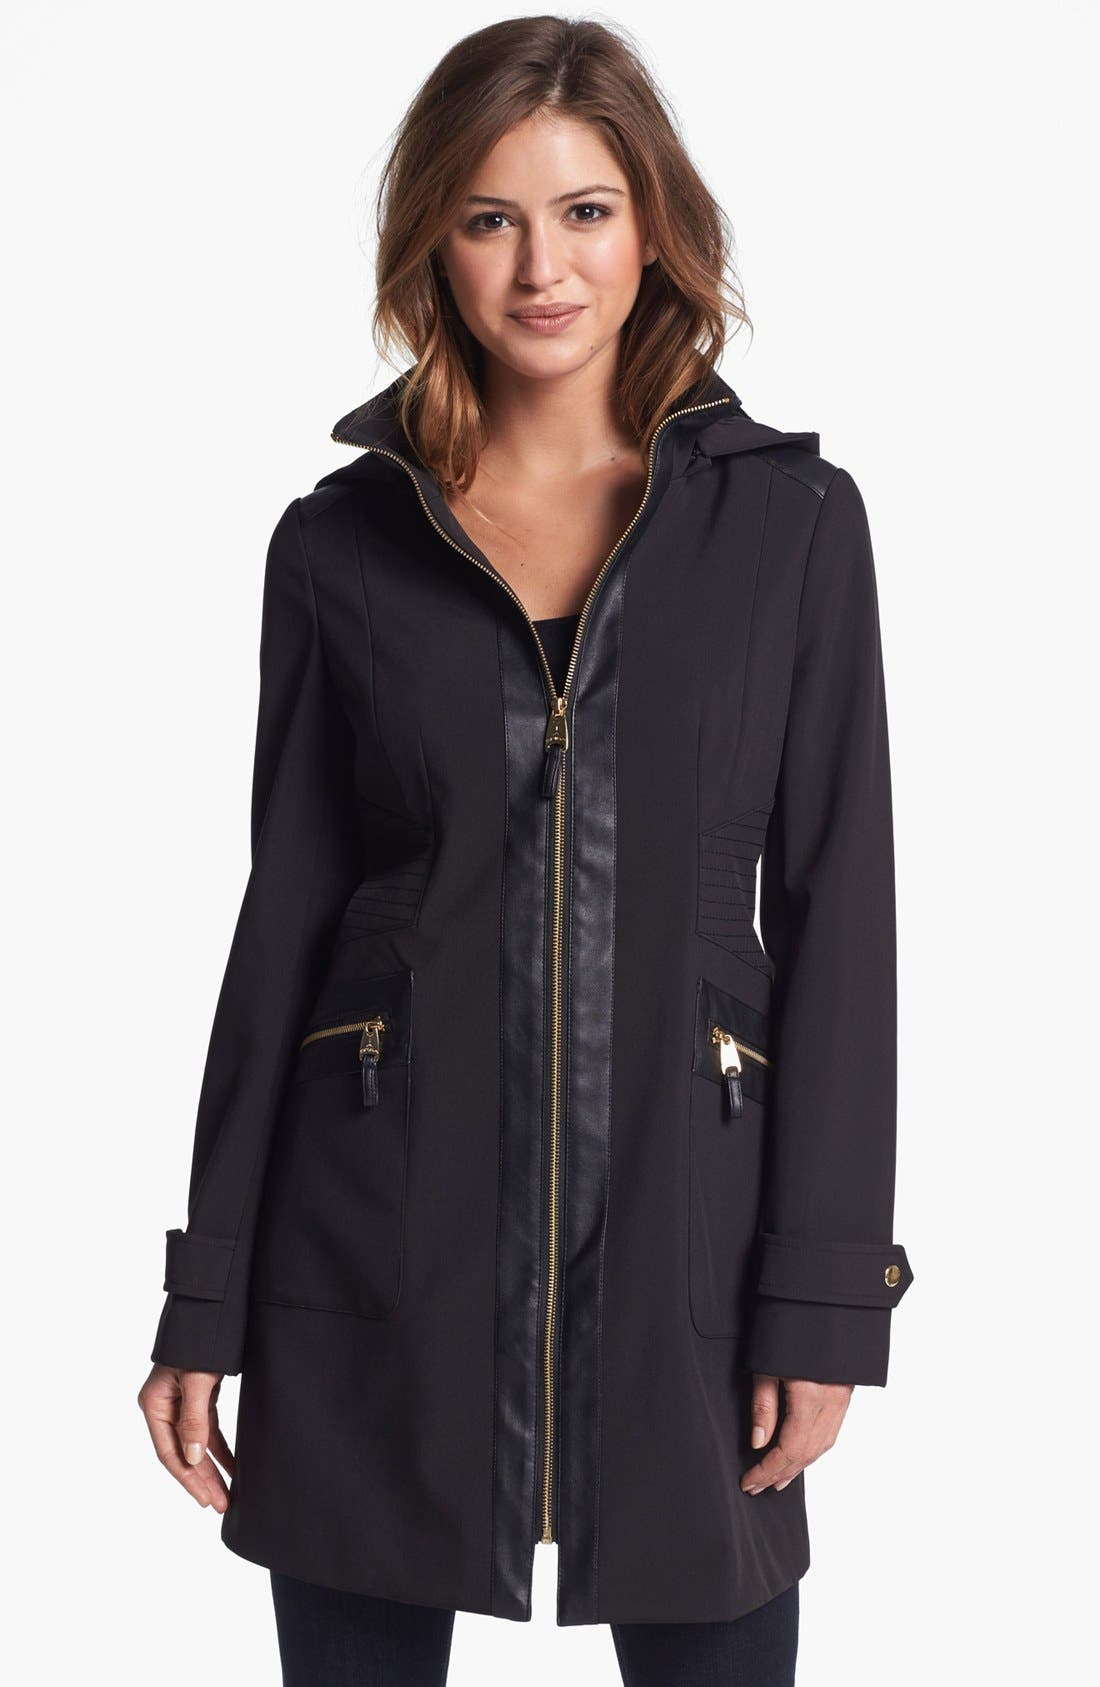 Main Image - Via Spiga Faux Leather Trim Soft Shell Coat (Regular & Petite) (Online Only)